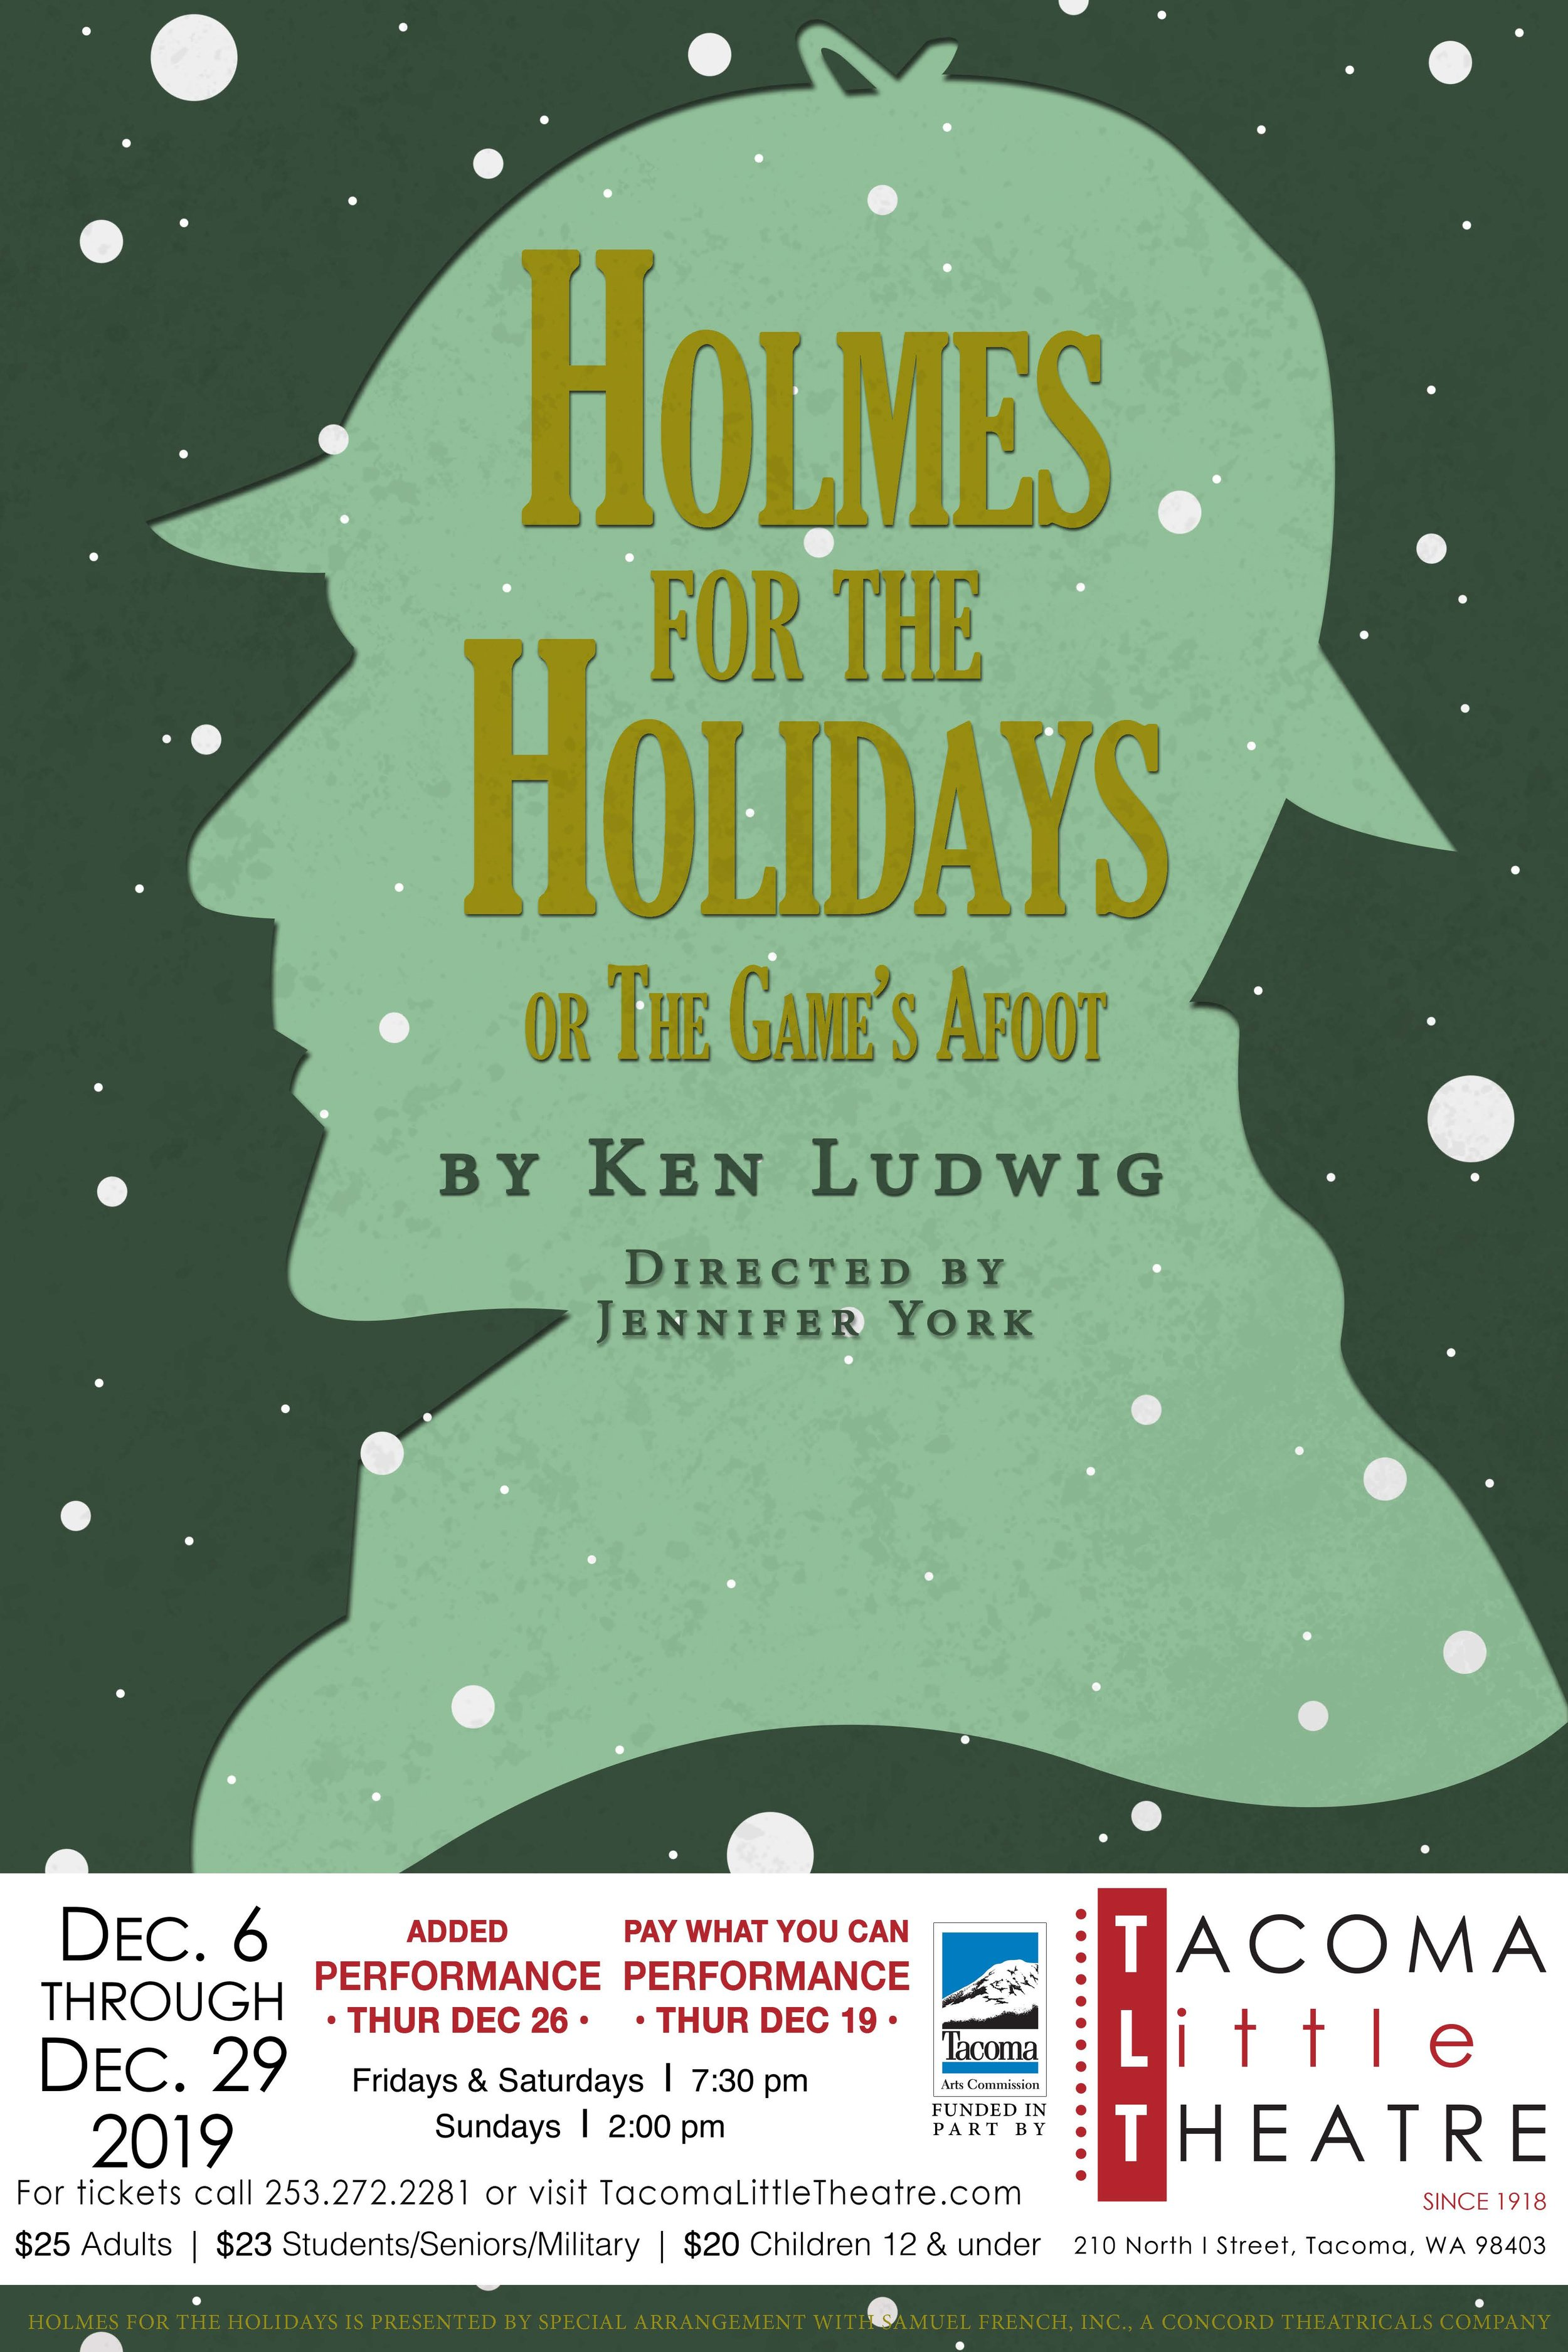 TLT Holmes for the Holidays Poster.jpg